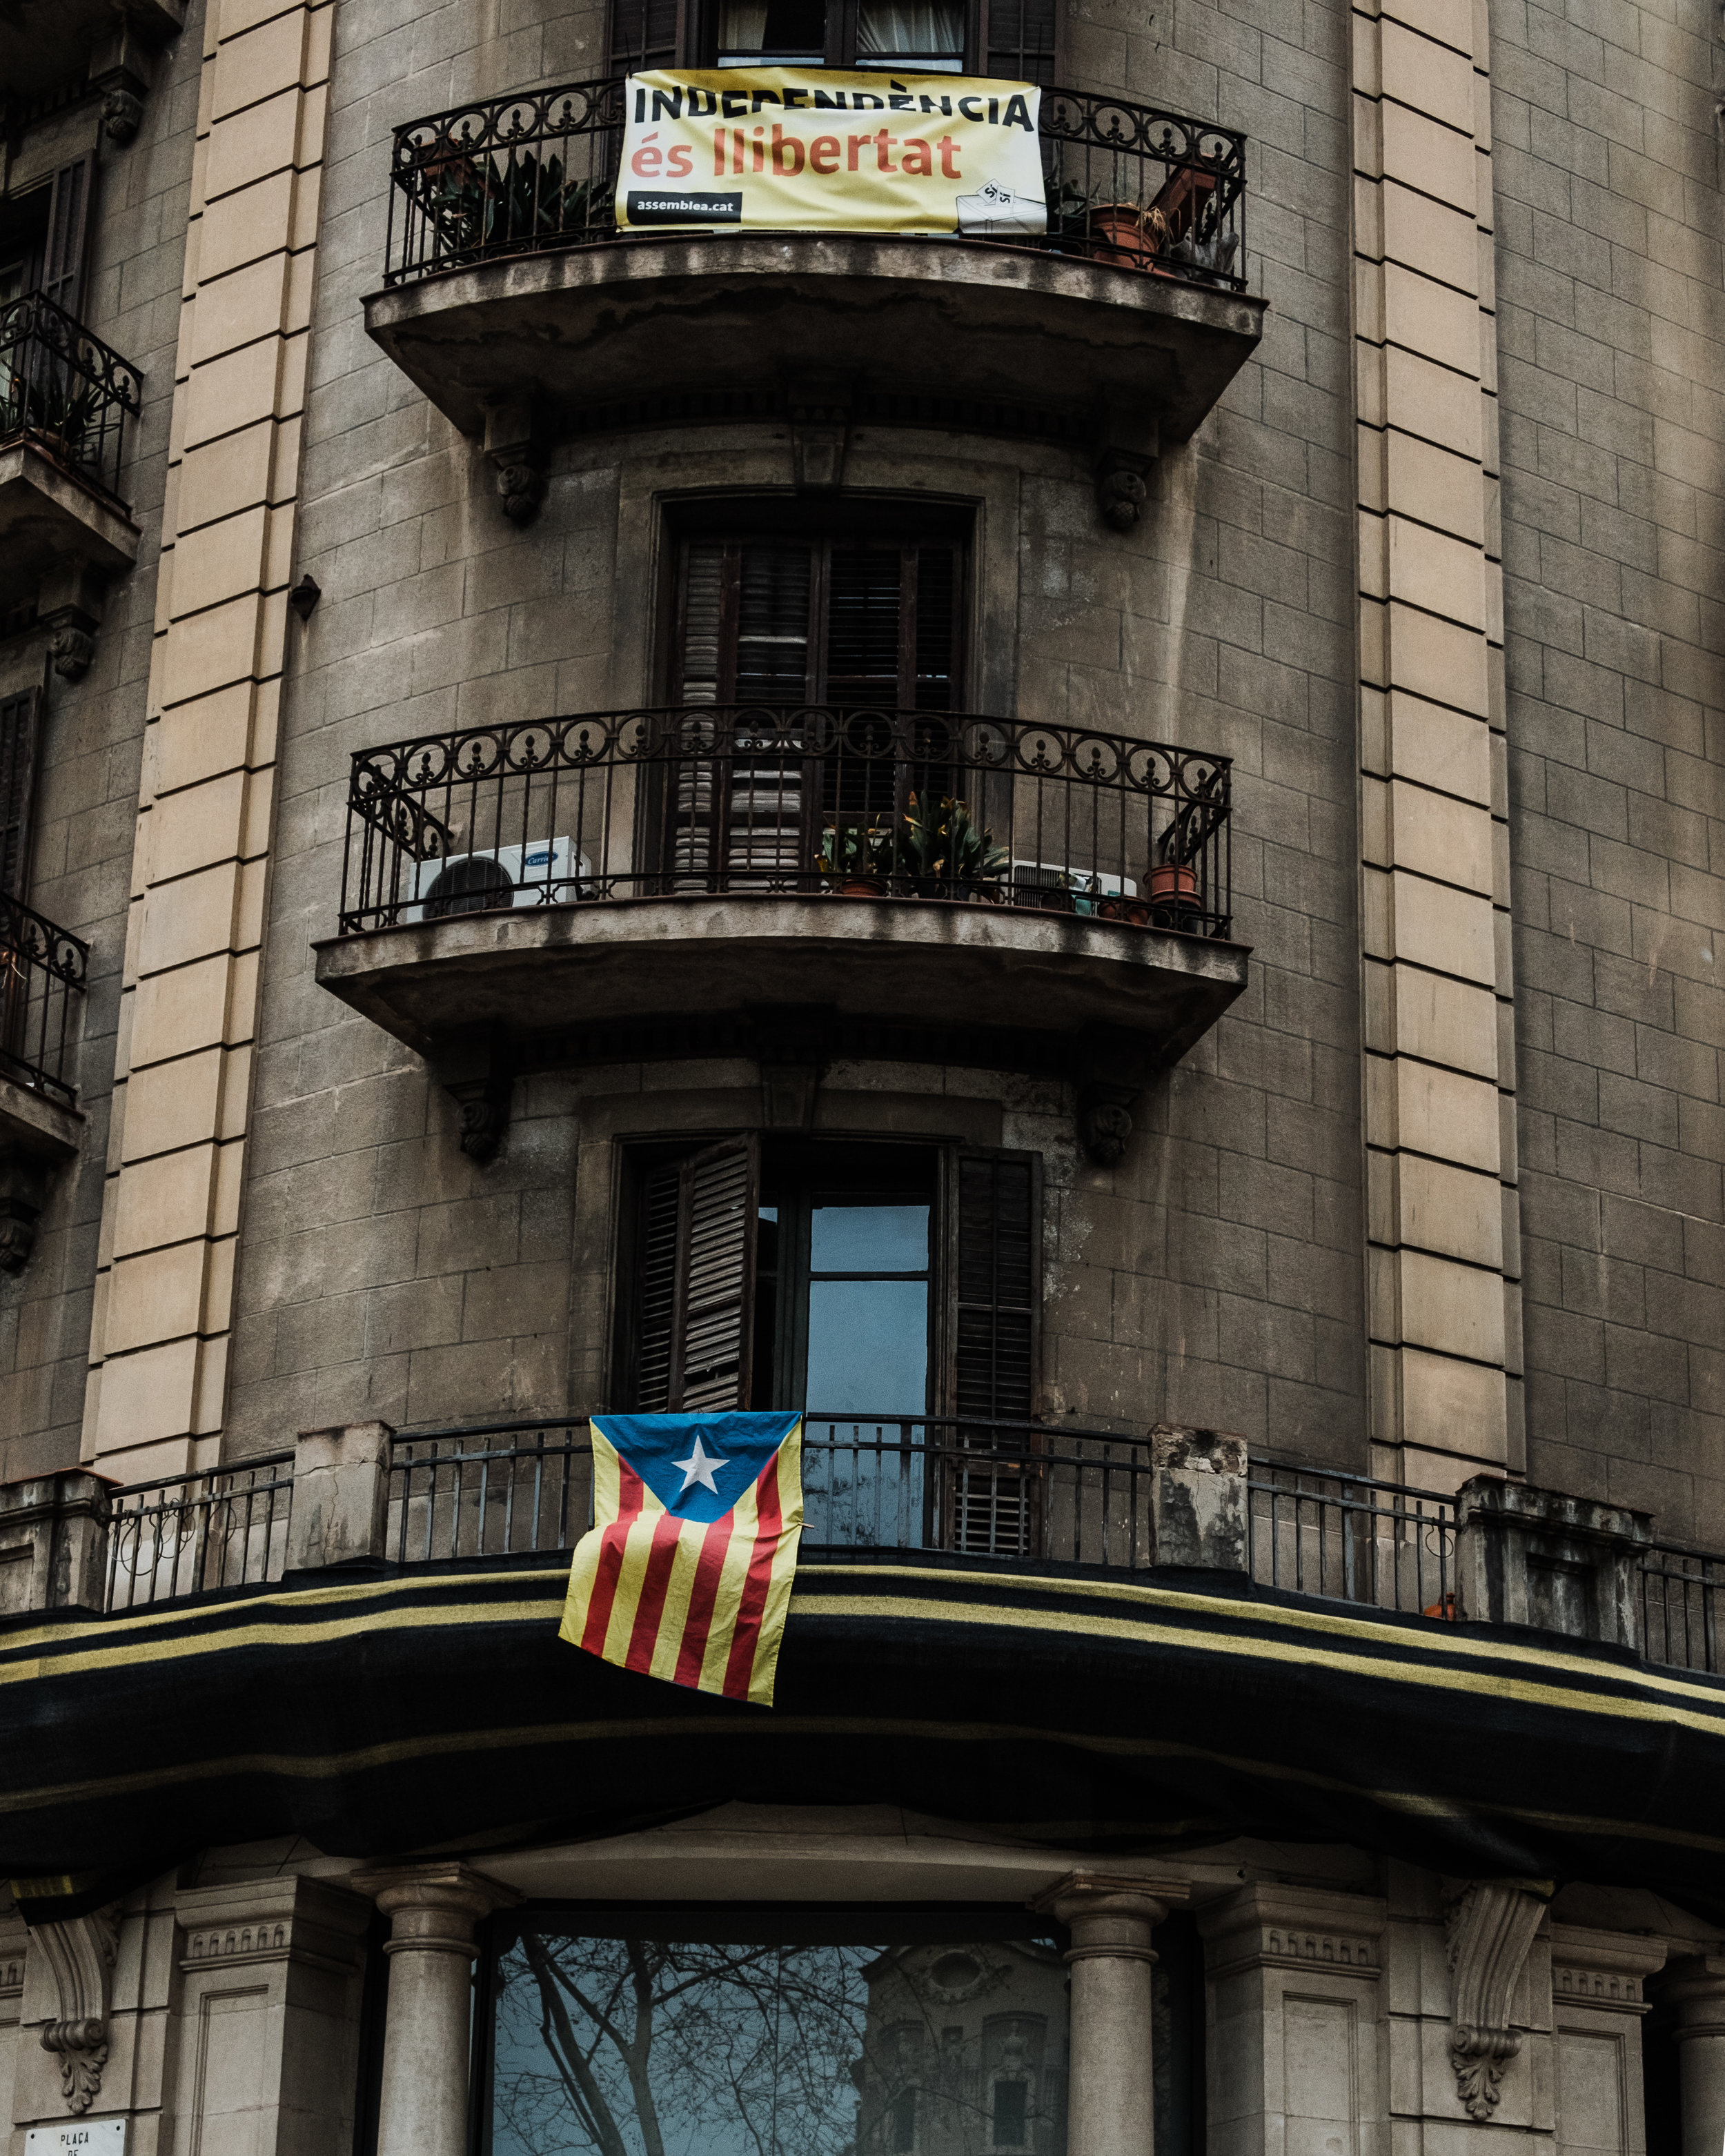 La Estelada Blava, the most popular flag that one will notice on display in Barcelona stands as the symbol of the separatist movement in Catalonia and represents their desire to gain independence from the rest of Spain